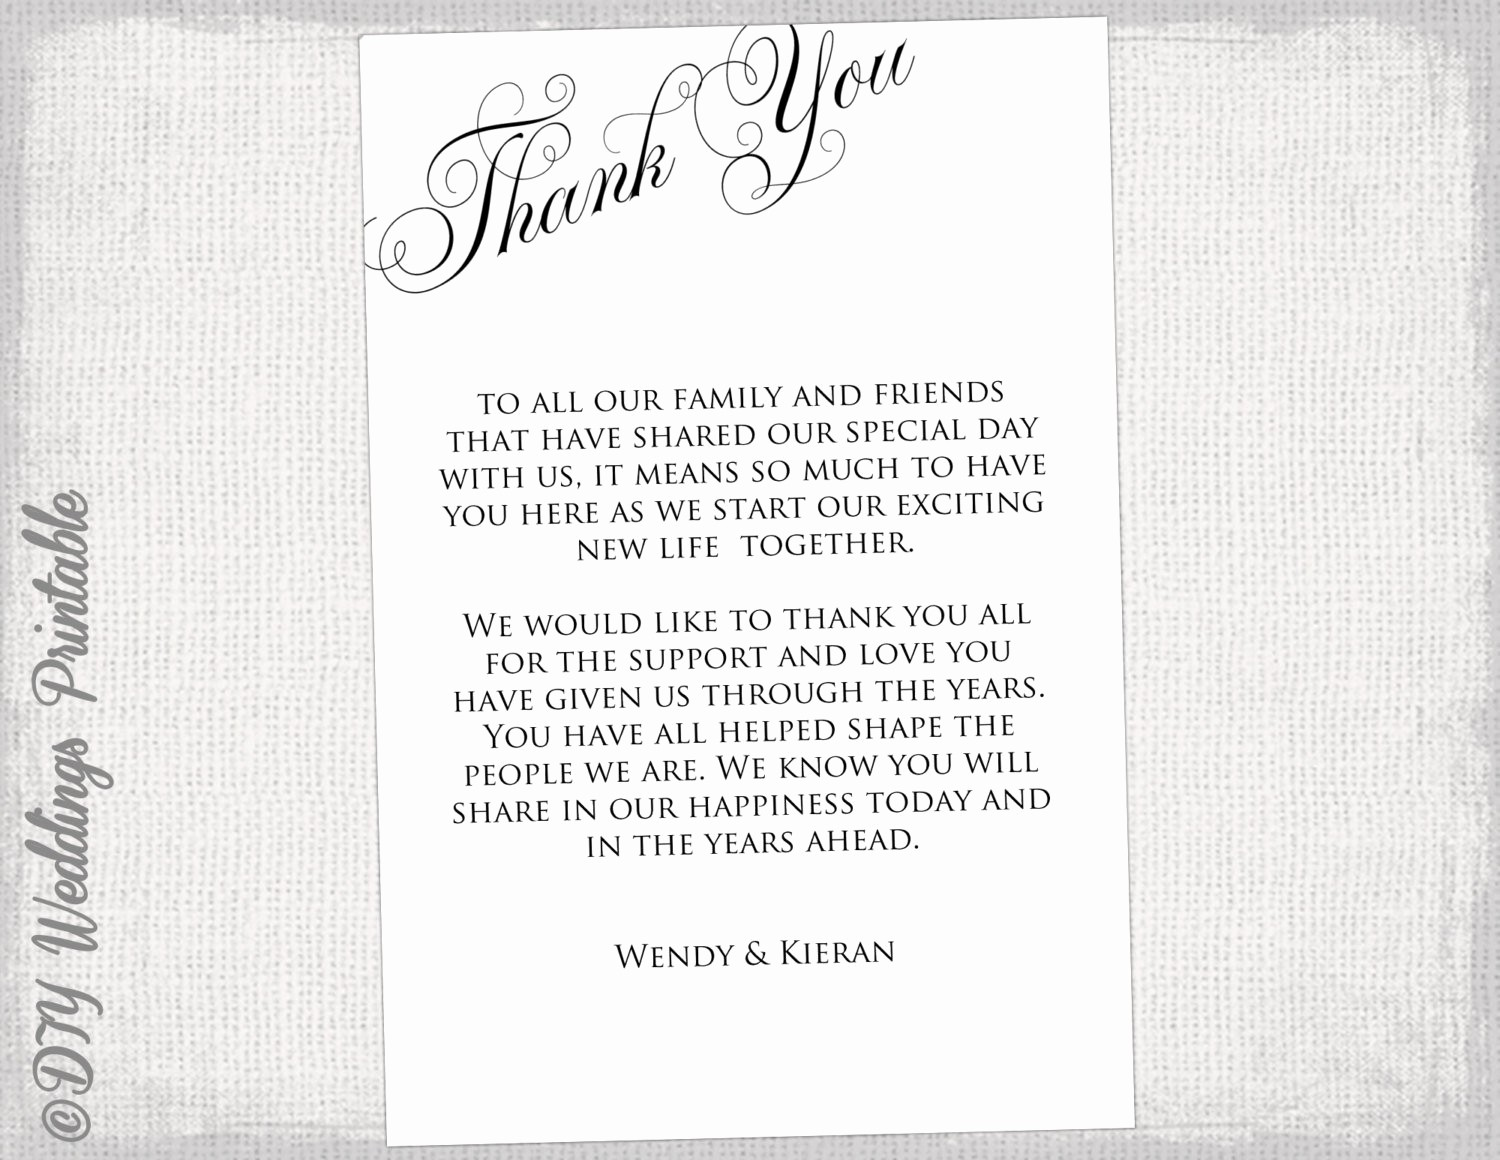 Template for Thank You Card Beautiful Printable Thank You Card Template Black & White Wedding Thank